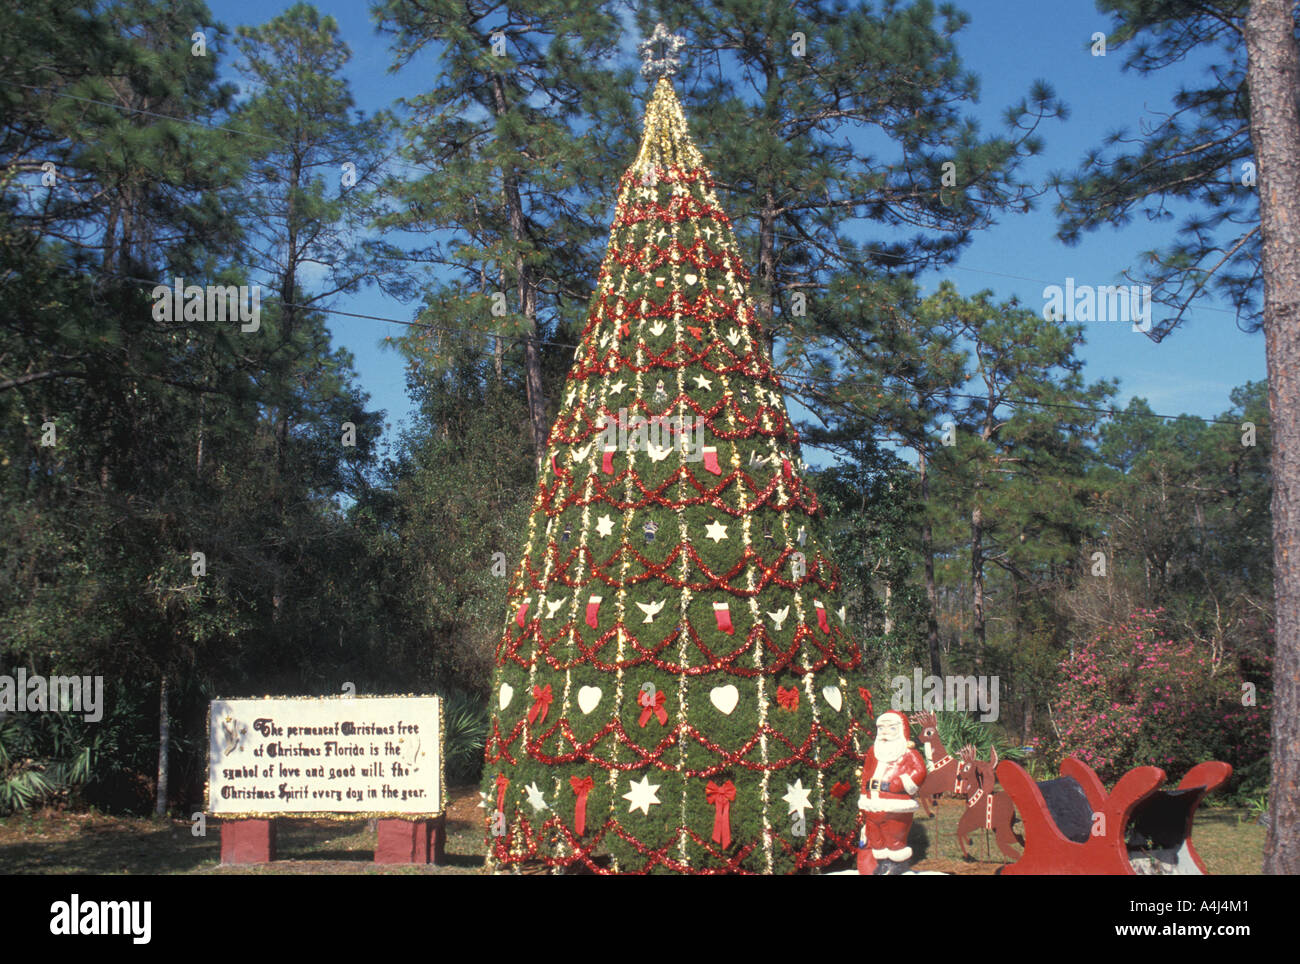 Christmas Town Florida.Christmas Tree Decorated At Town Of Christmas Florida Where